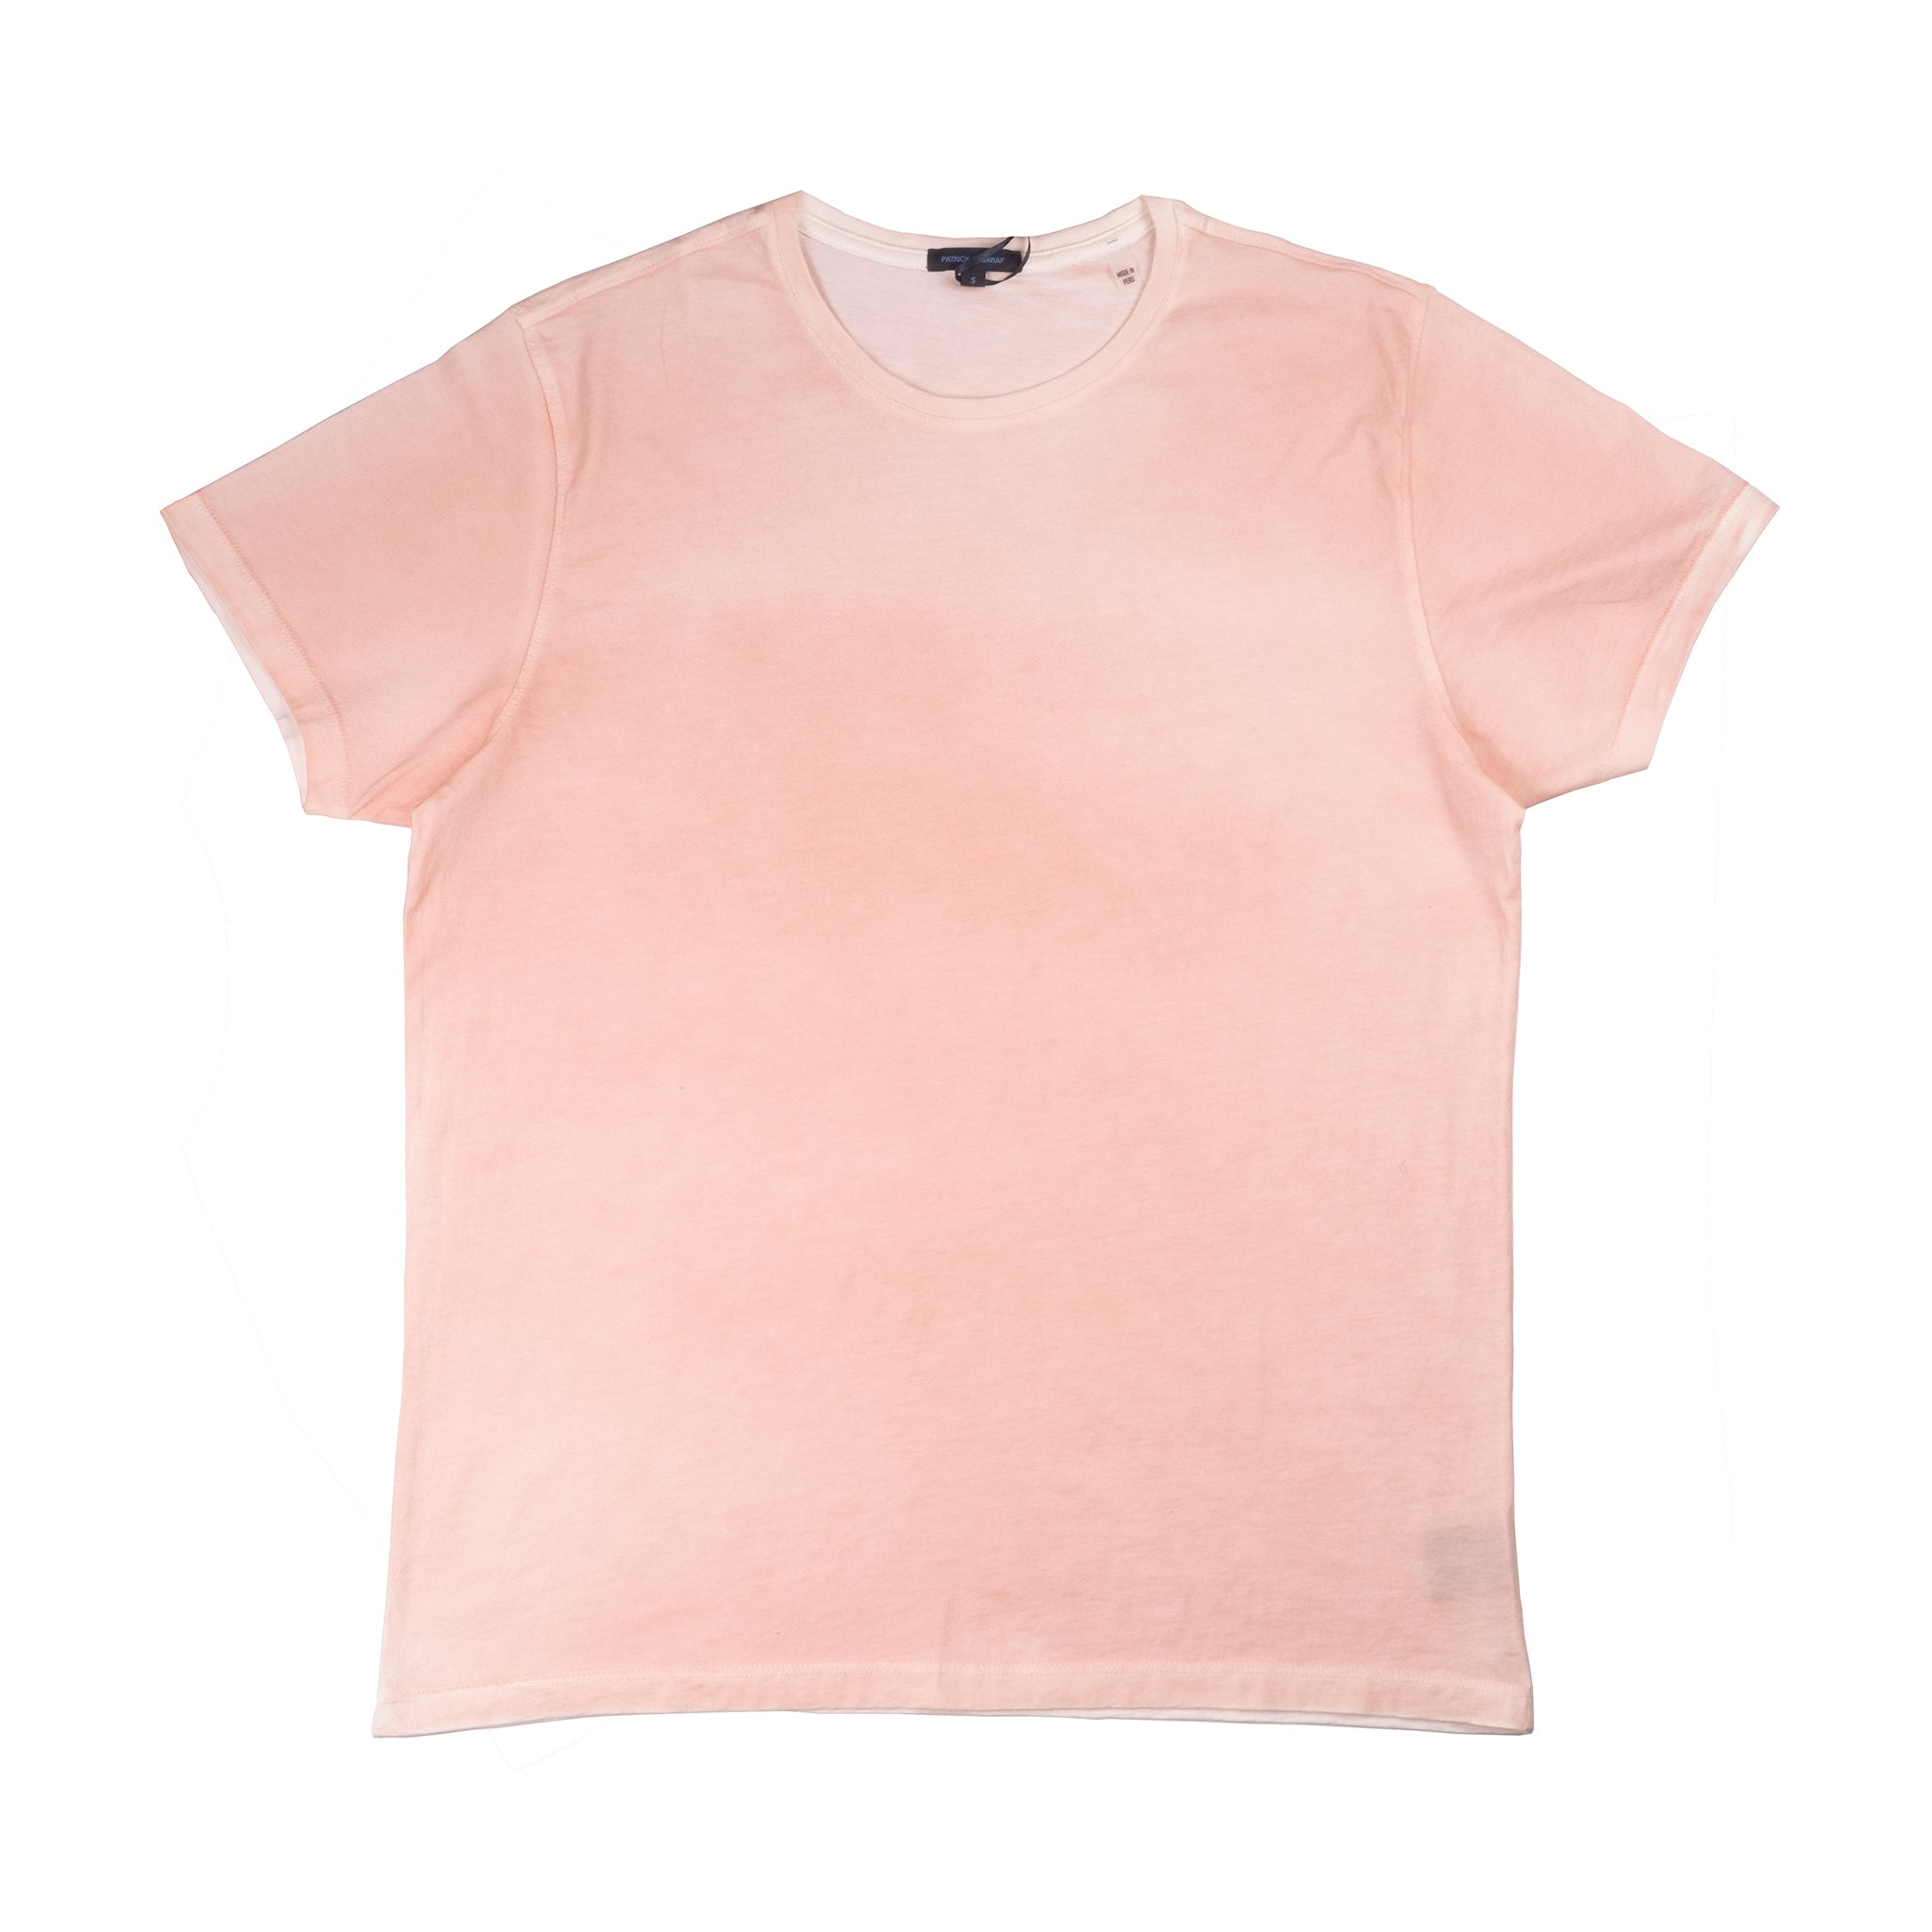 Cotton Candy Spray Wash Tee